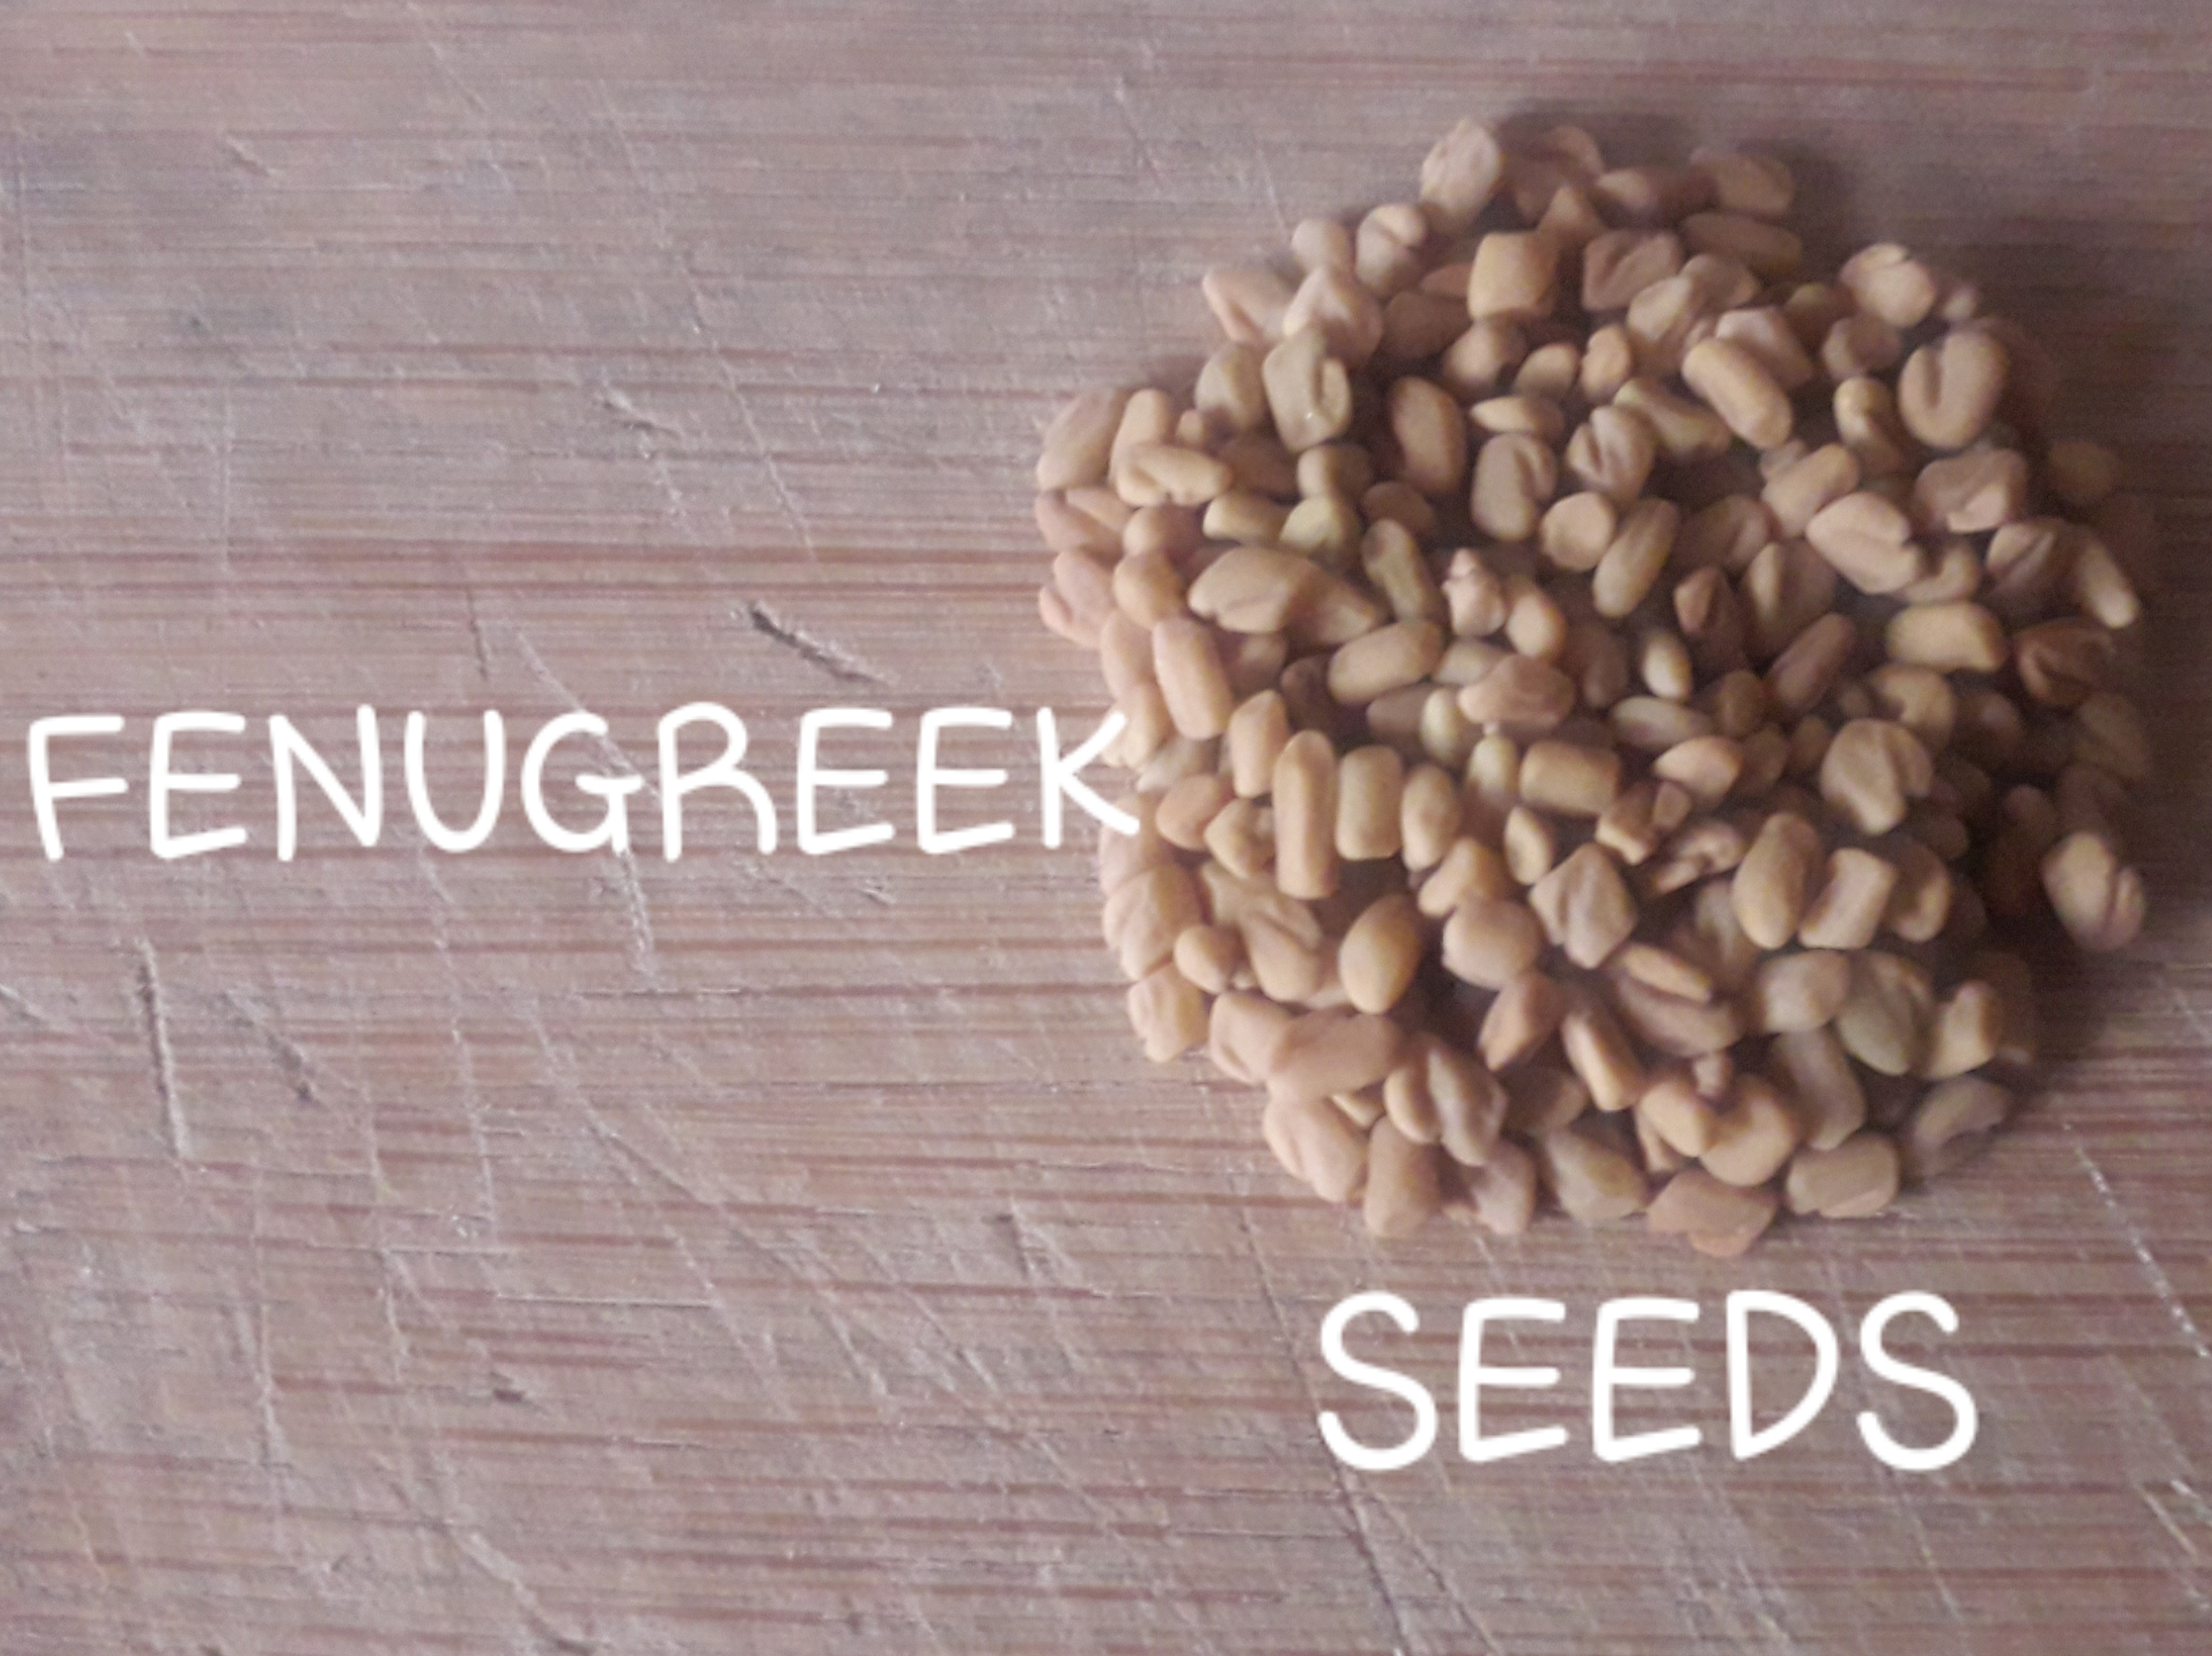 Fenugreek Seeds: Cooking with the Spice of Fenugreek Seeds - Recipes in MASALAHEALTH.COM